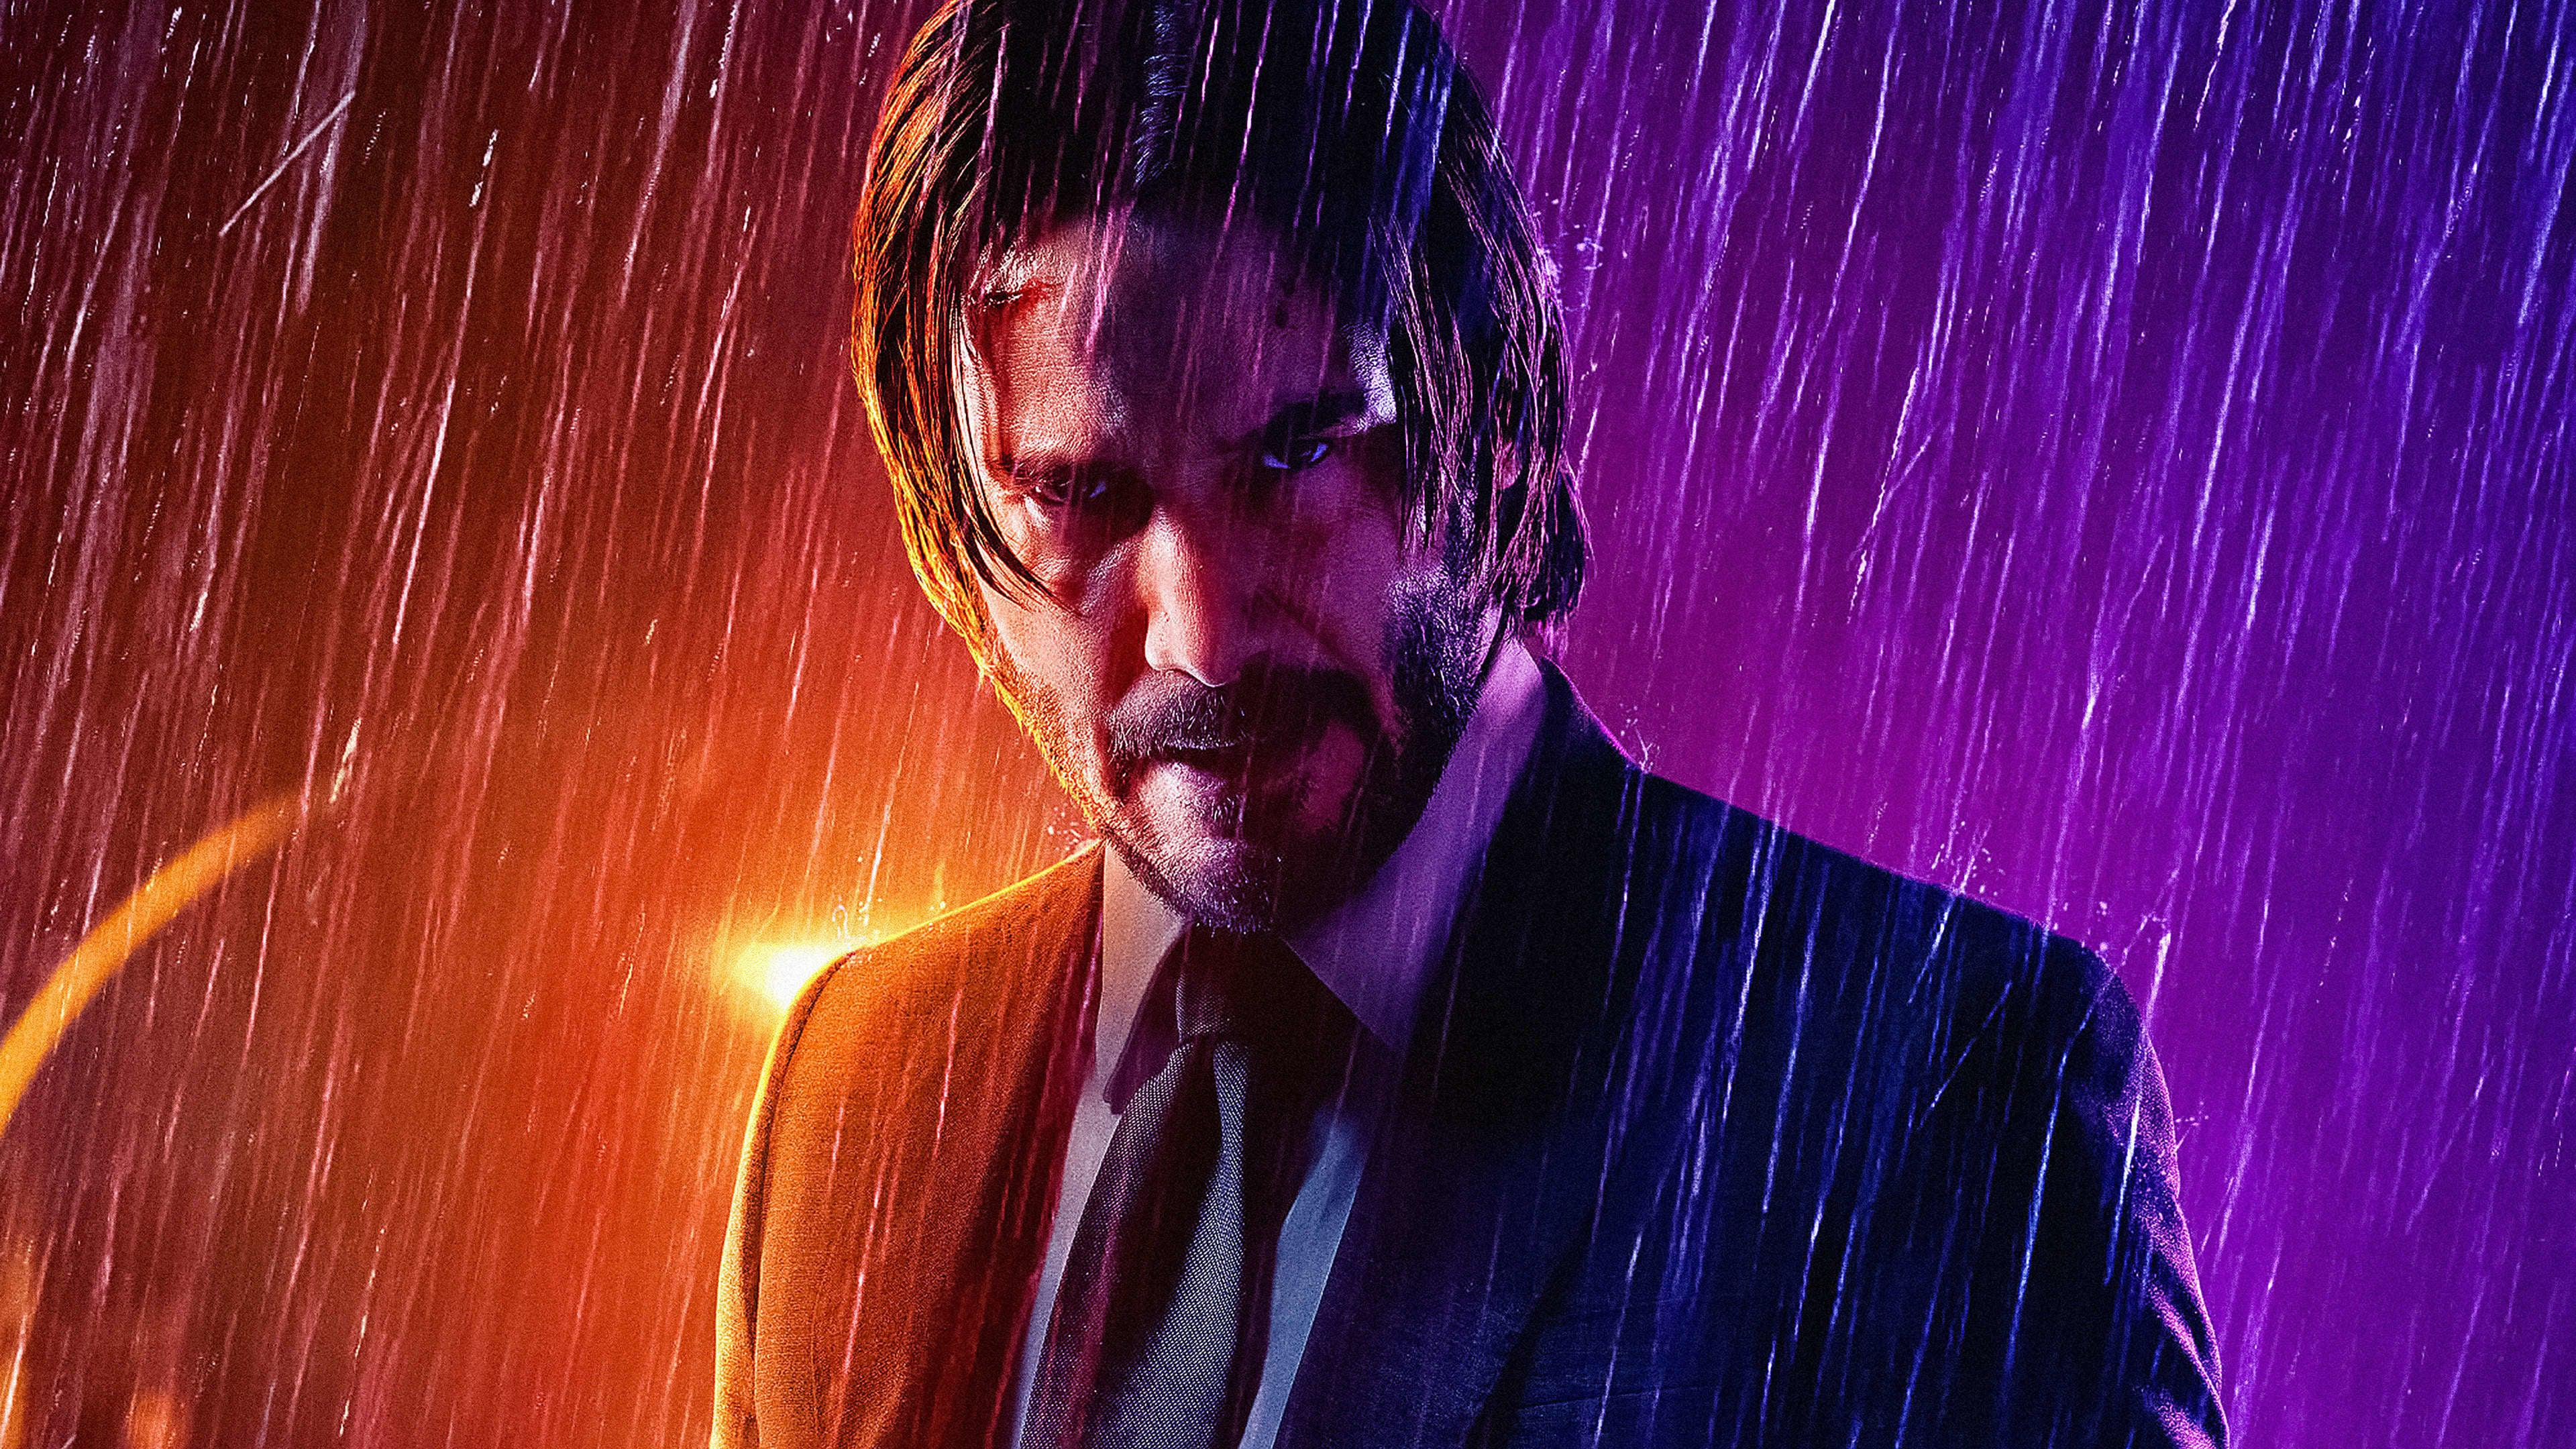 The Continental John Wick | The Continental | ΣΙΝΕΜΑ John Wick, The Continental, ΣΙΝΕΜΑ